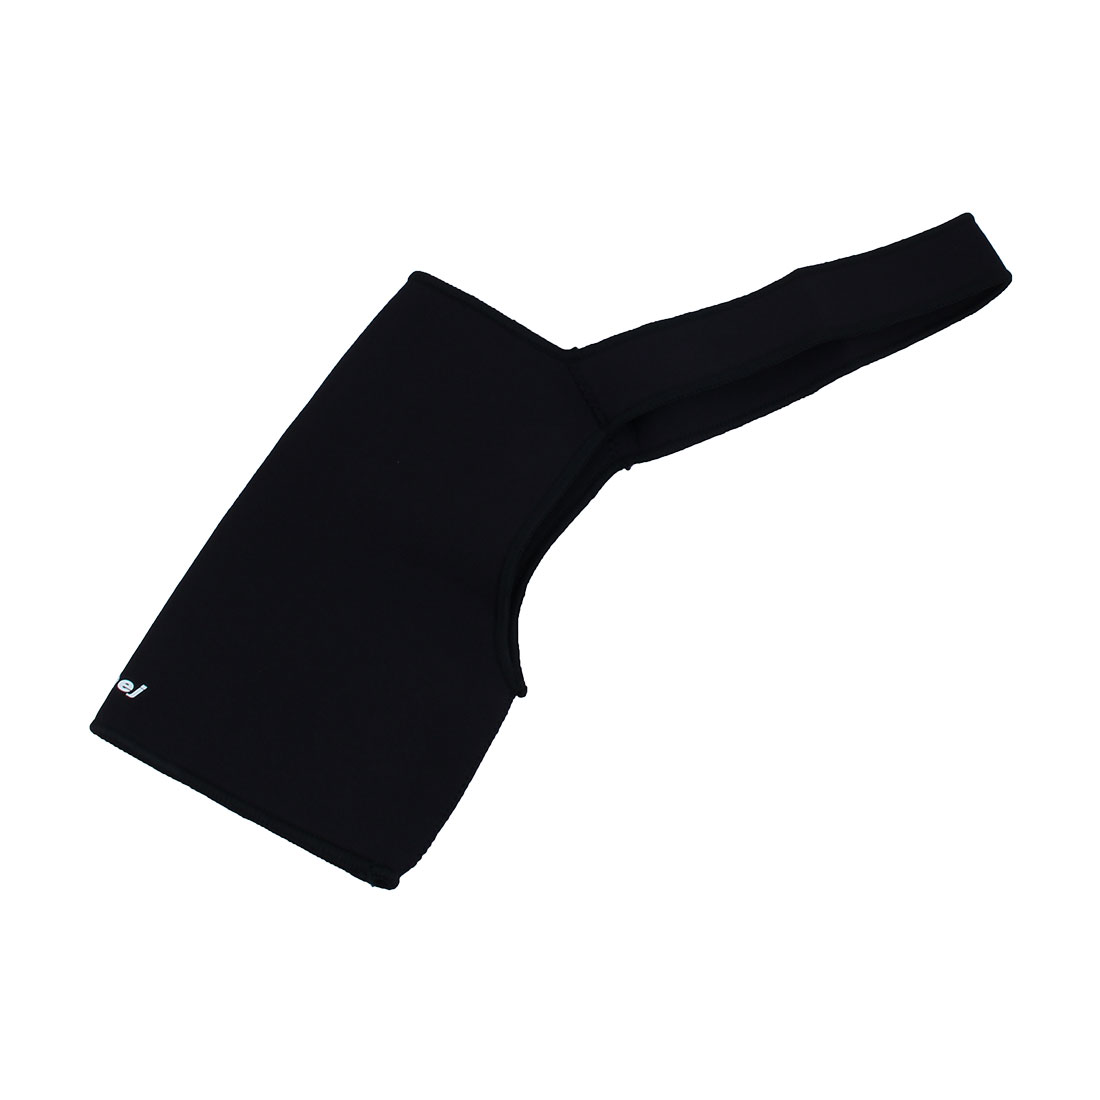 Men Black Fabric Single Shoulder Stretchy Shoulder Support Brace